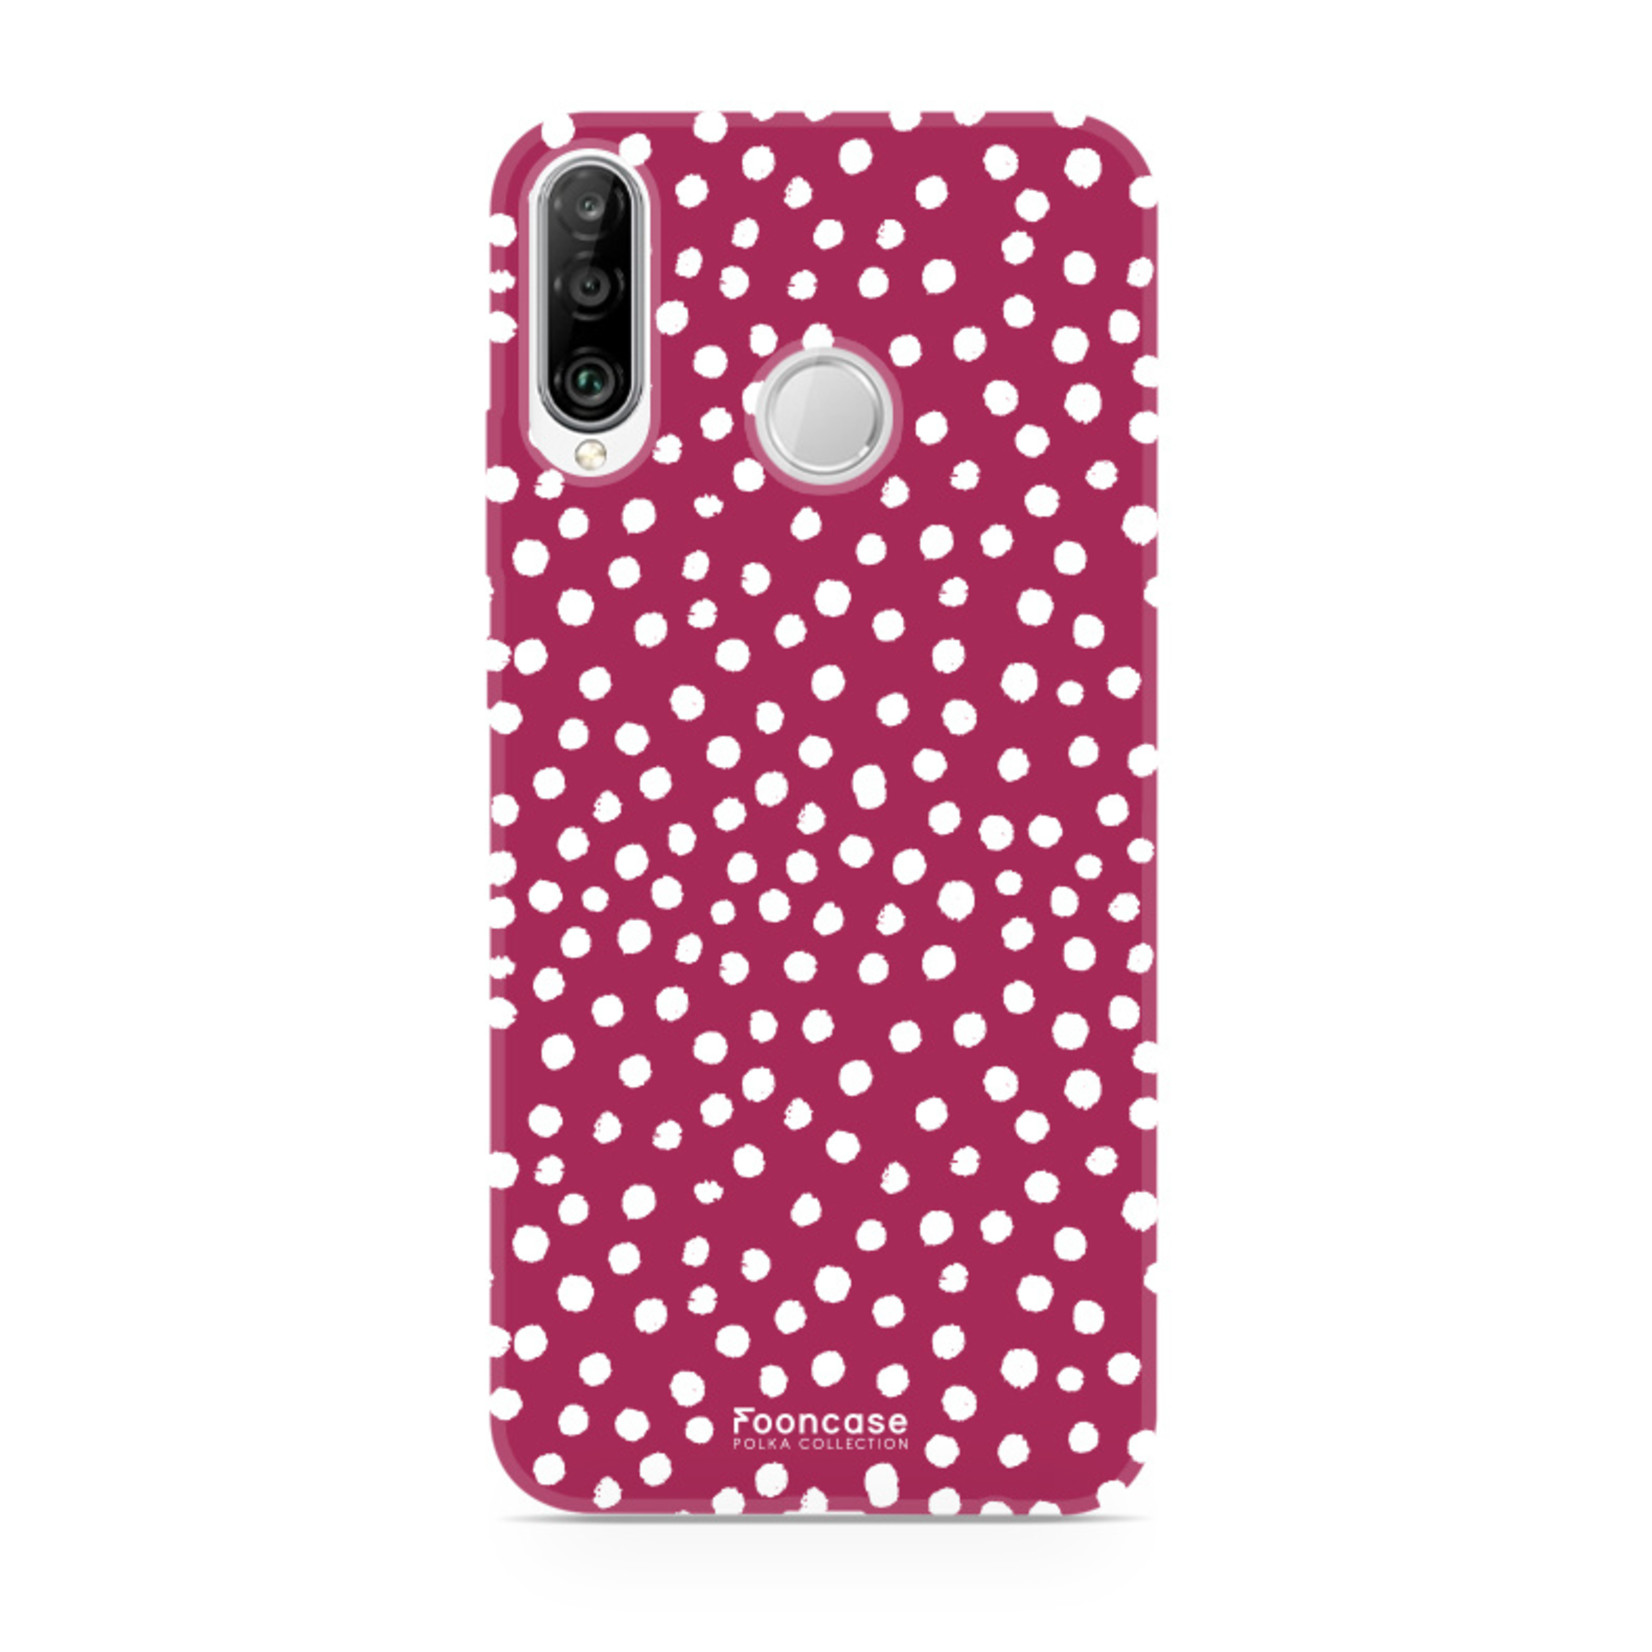 FOONCASE Huawei P30 Lite hoesje TPU Soft Case - Back Cover - POLKA COLLECTION / Stipjes / Stippen / Rood